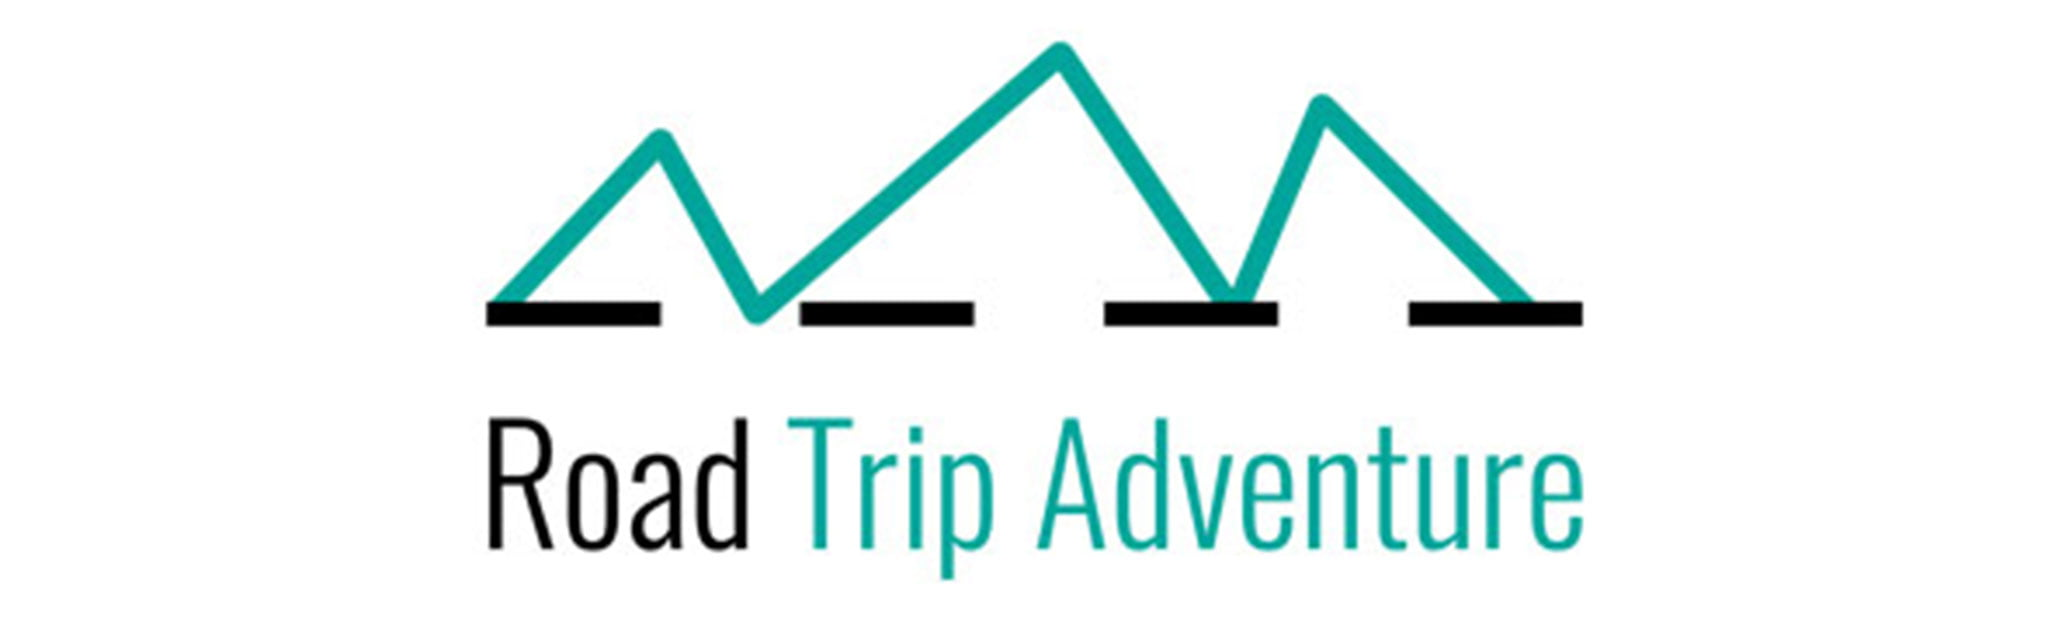 Logotipo de Road Trip Adventure